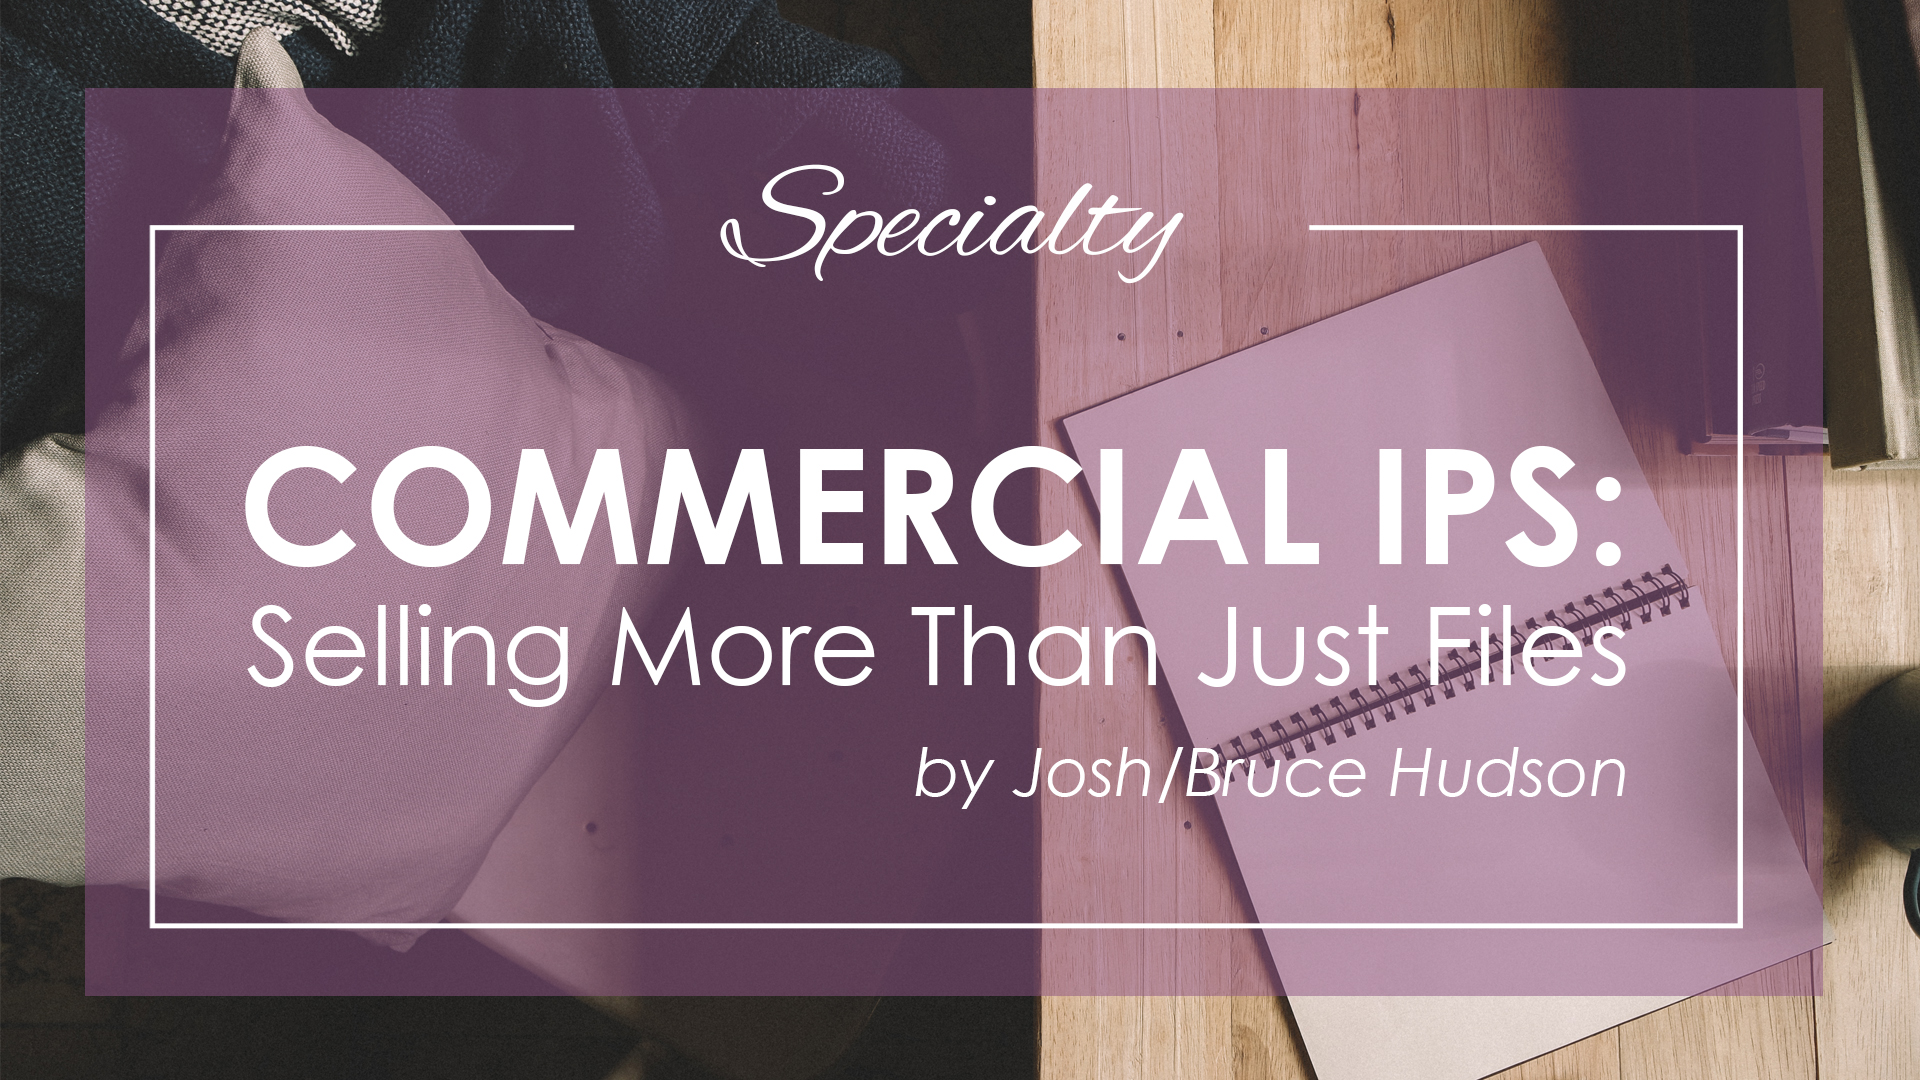 Commercial IPS: Selling More Than Just Files